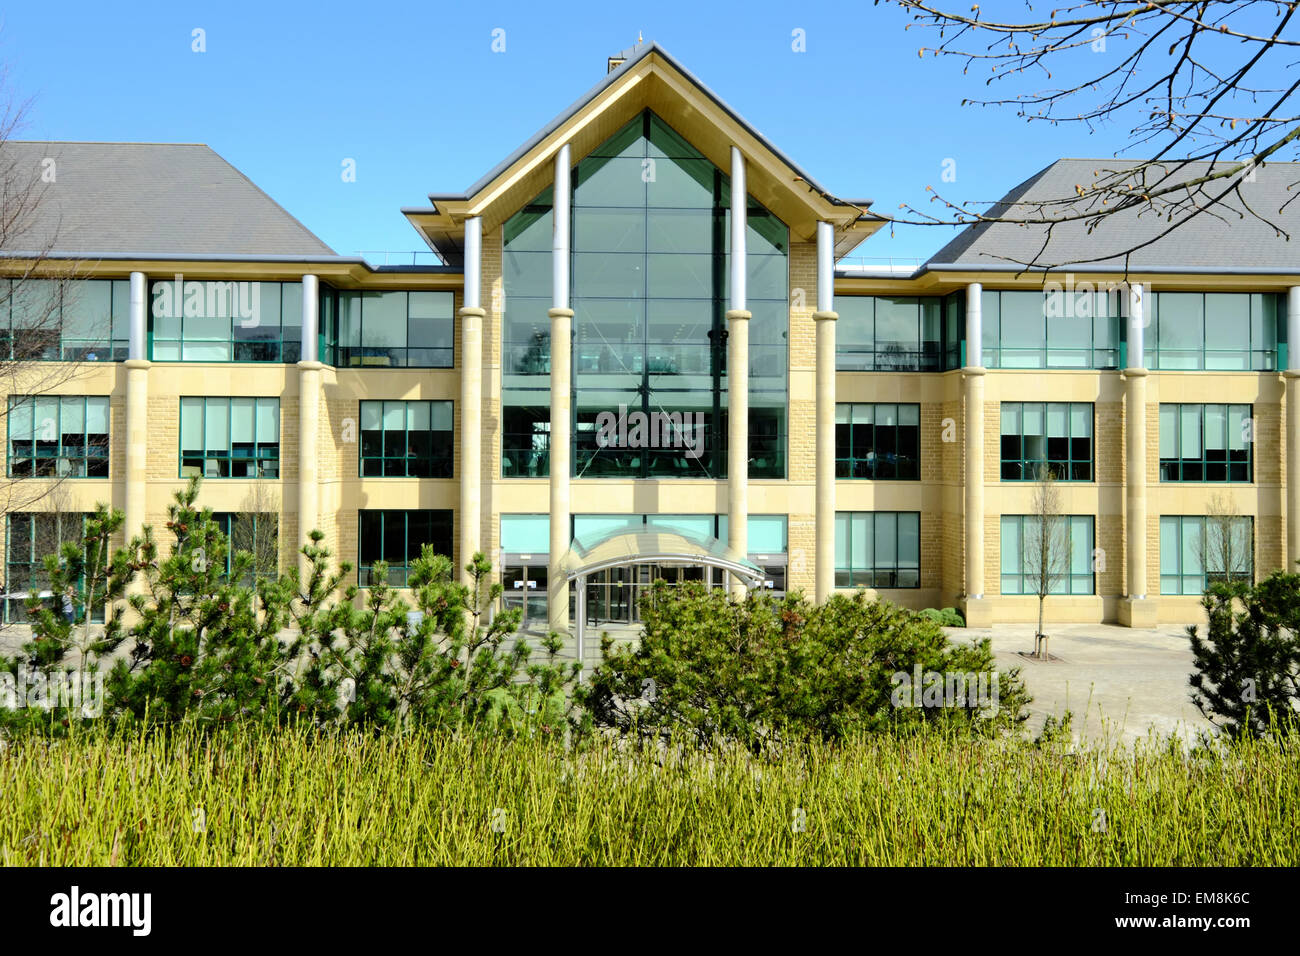 Wm morrison supermarkets plc trading as morrisons is the fourth stock photo 81325284 alamy - Morrisons plc head office ...